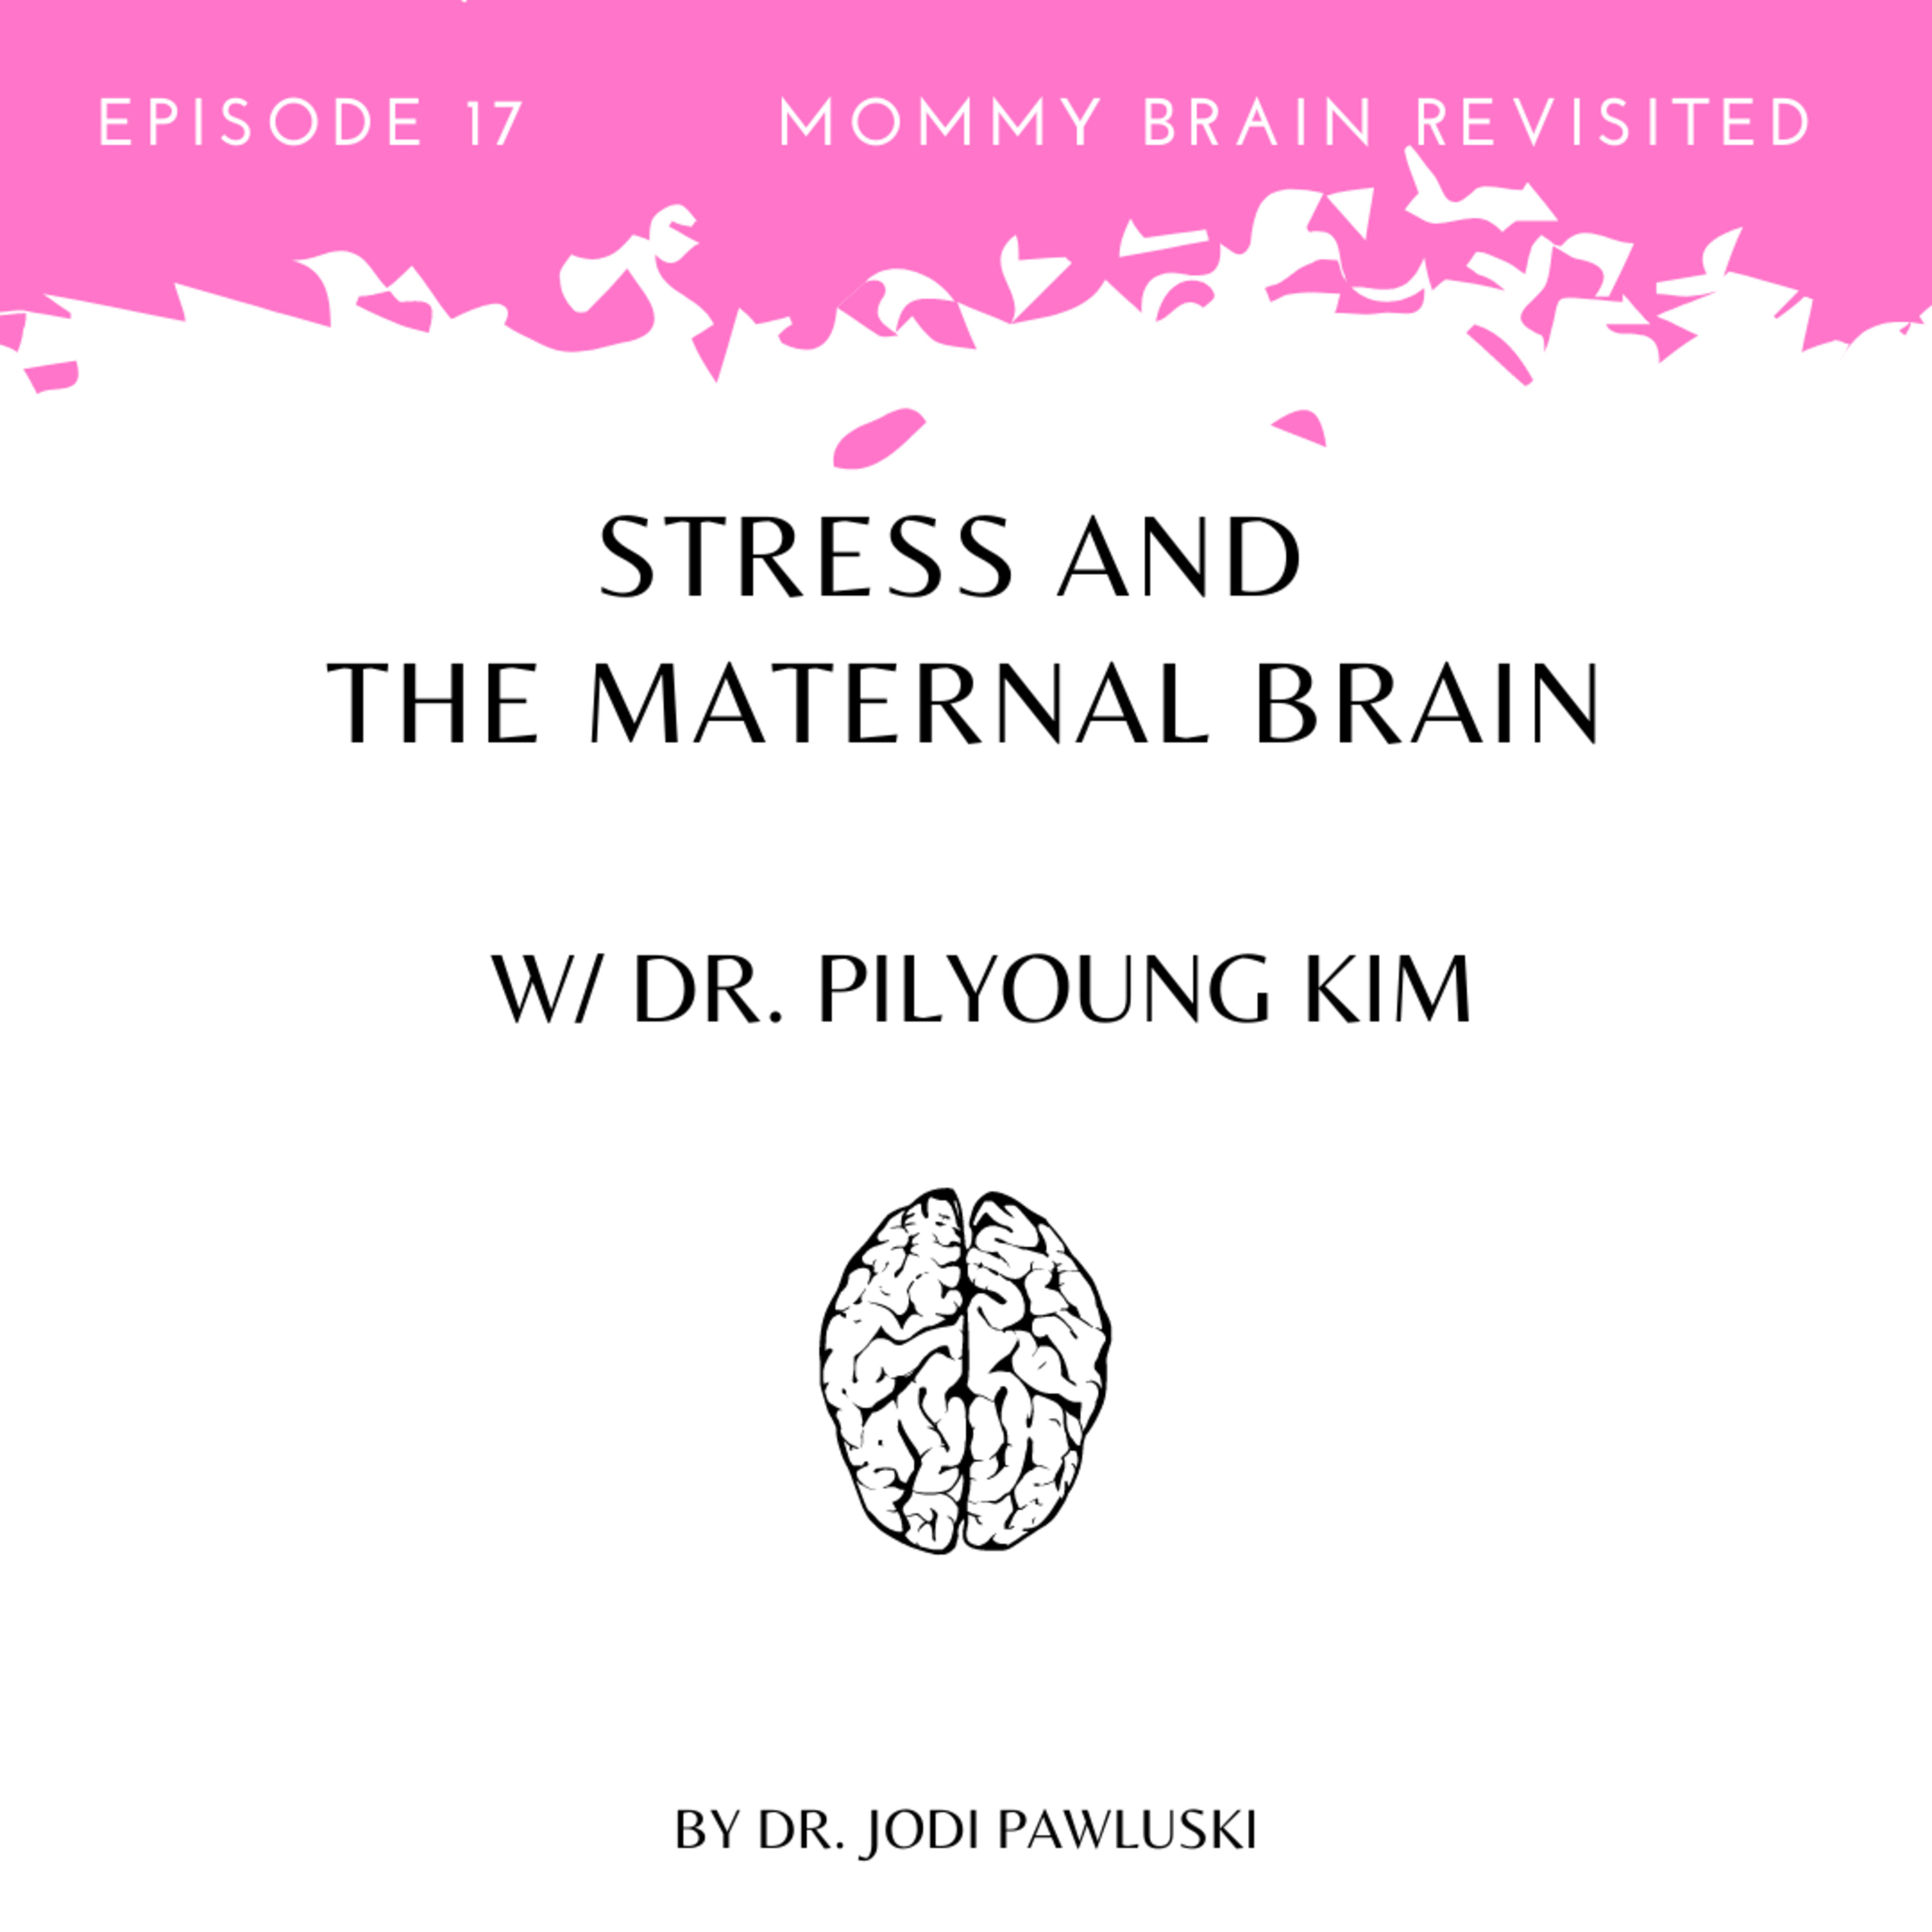 17. Stress and the Maternal Brain